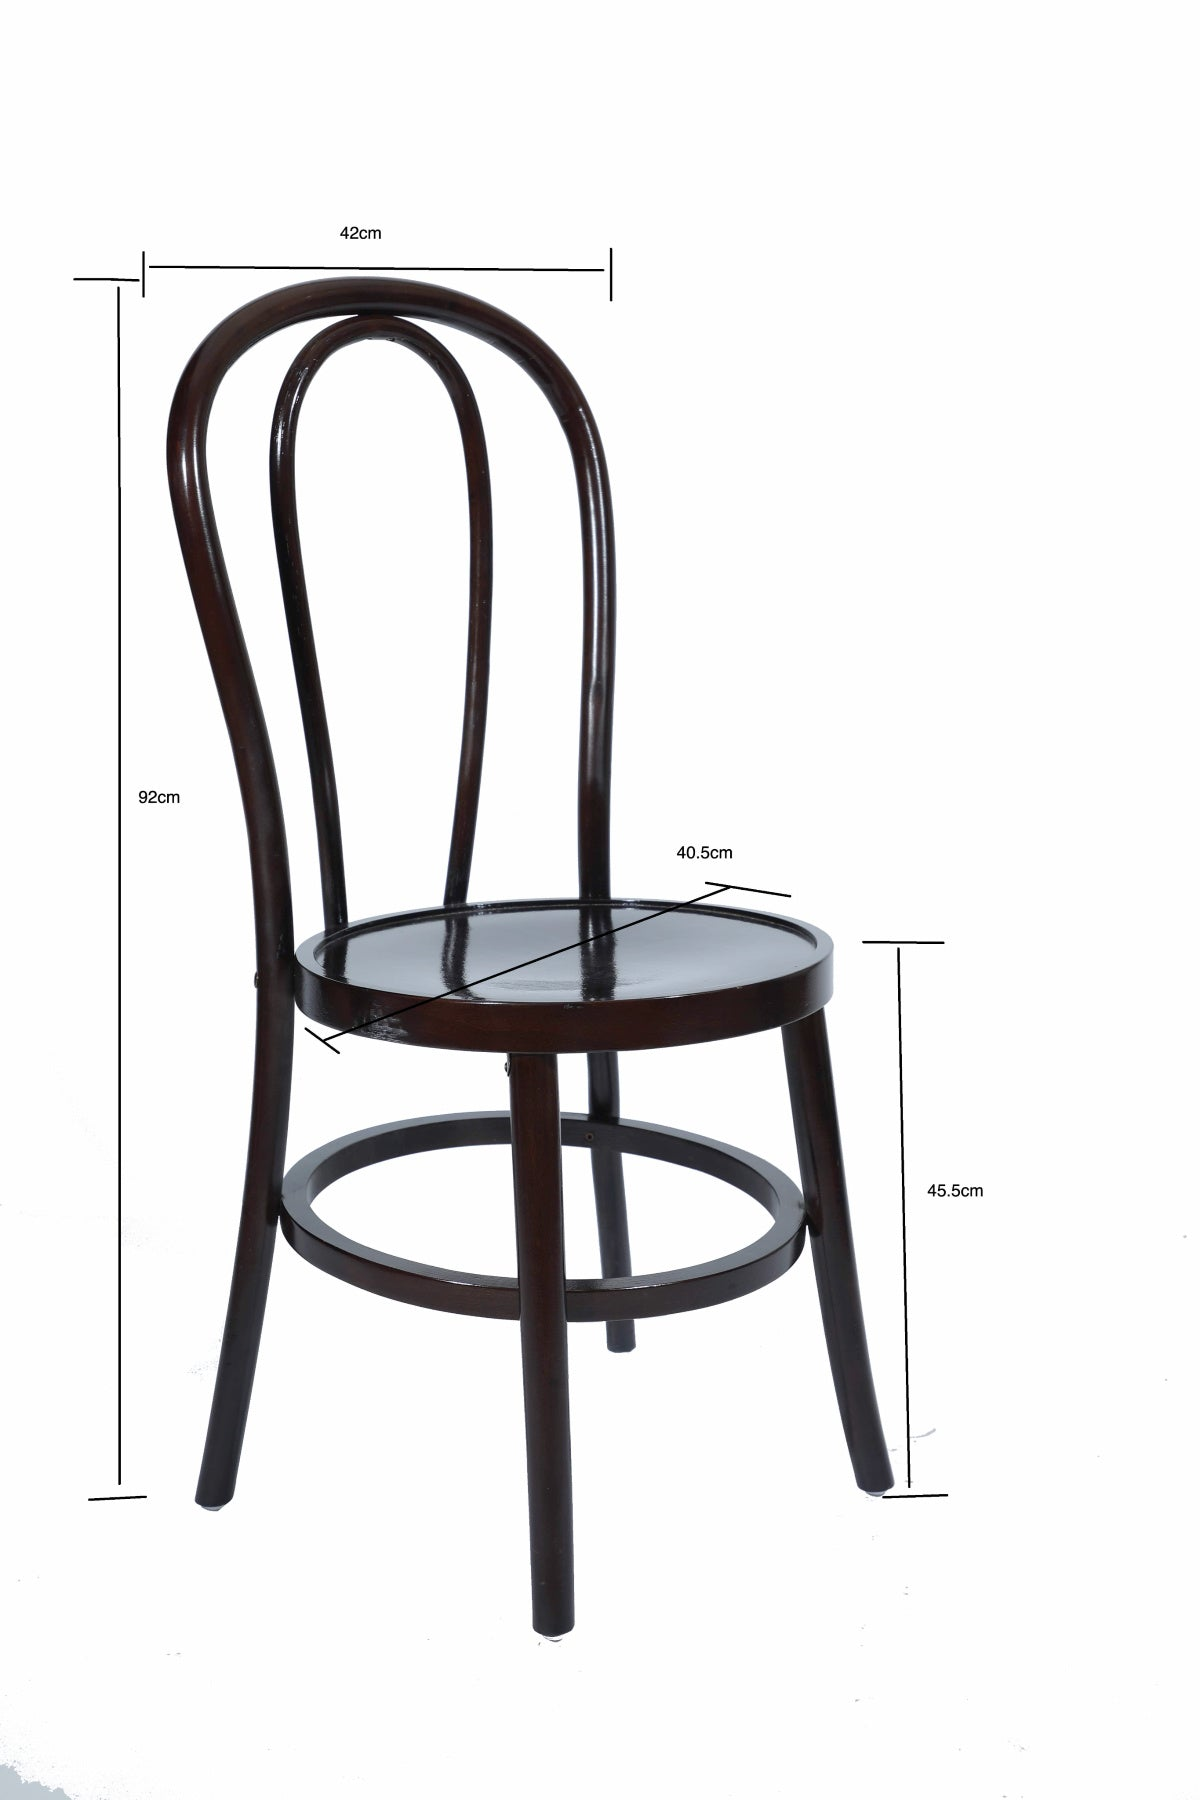 Thornet bentwood dark chair